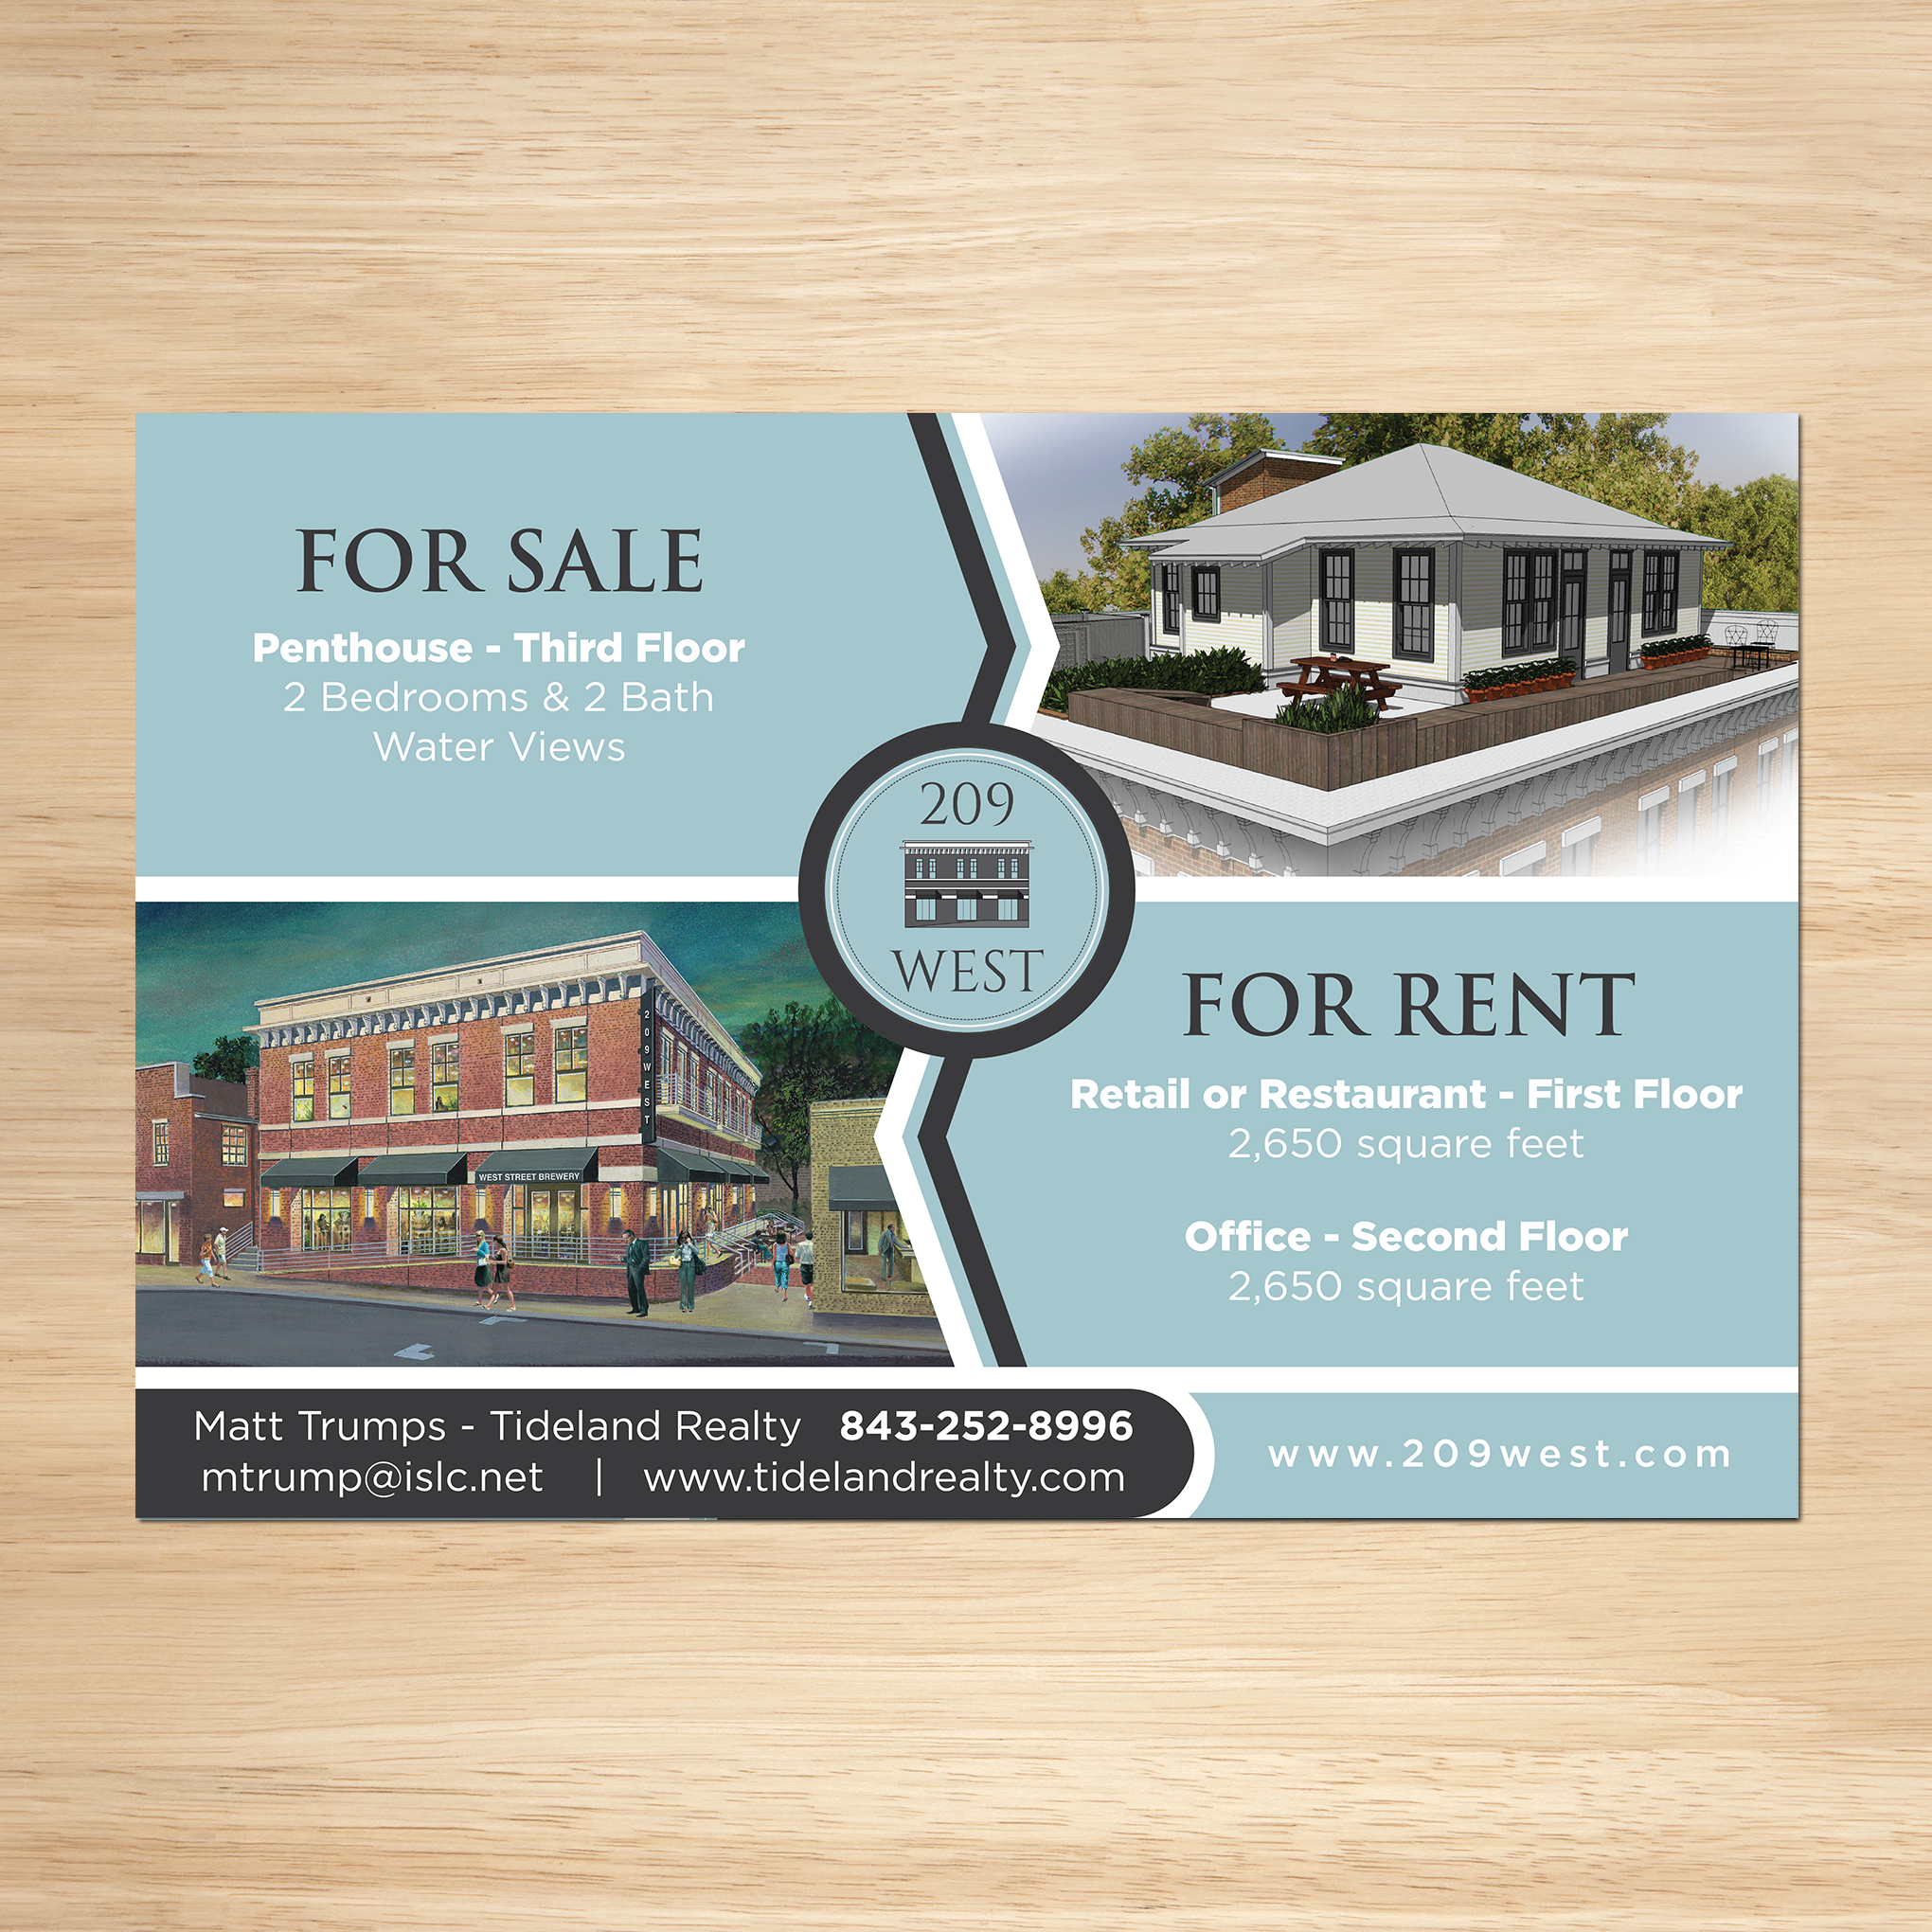 209 West For Sale and Rent Sign